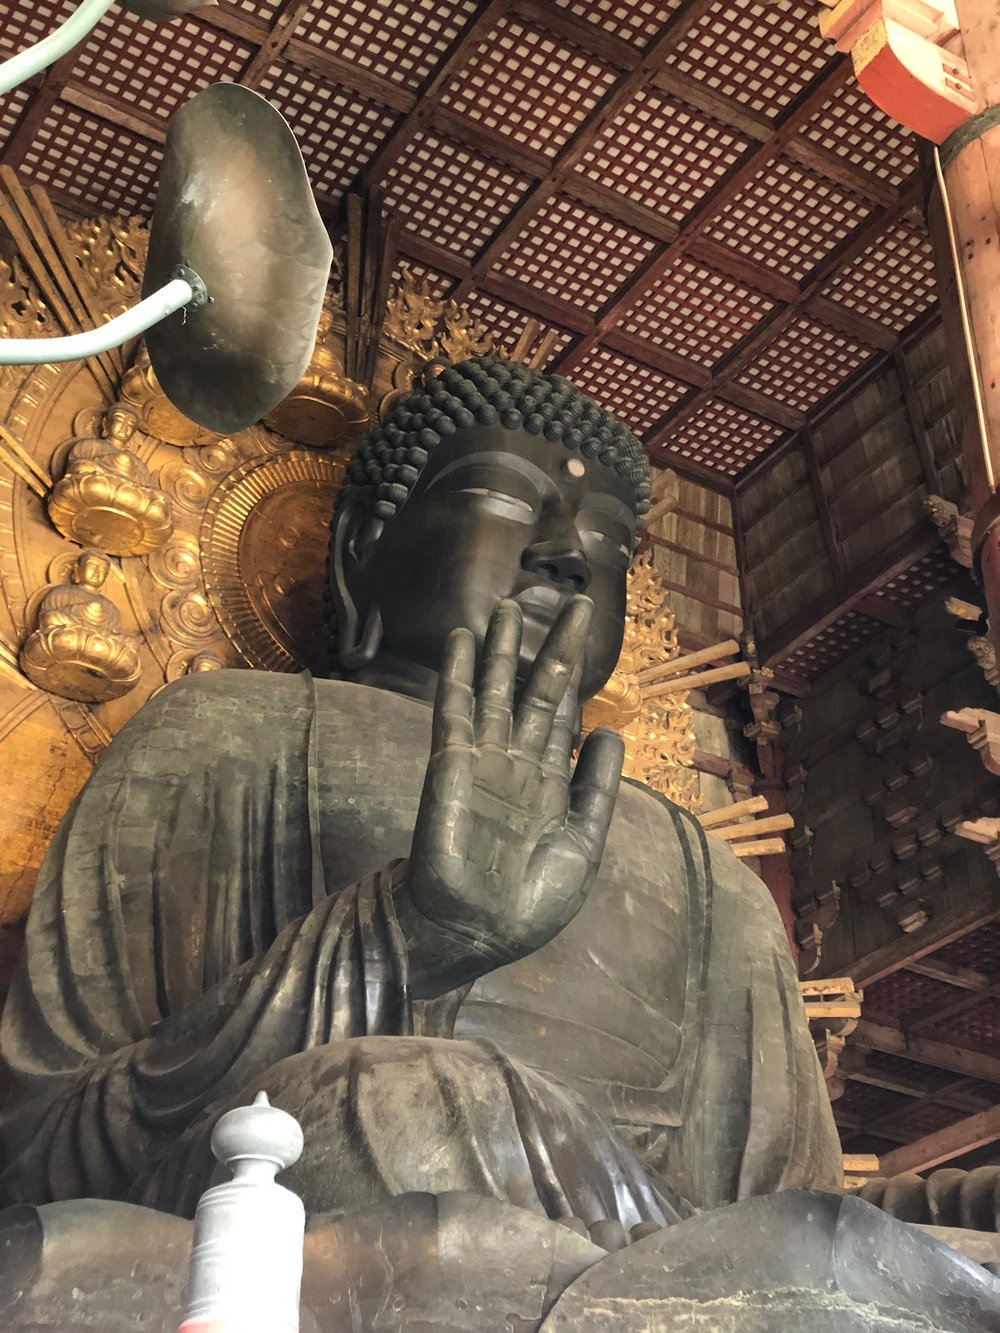 We shuffled thorugh the Great Buddha Hall with tons of other tourists to take in the Daibutsu in all his glory. He sits upon gigantic bronze lotus leaves inscribed with the story of the world of enlightenment.